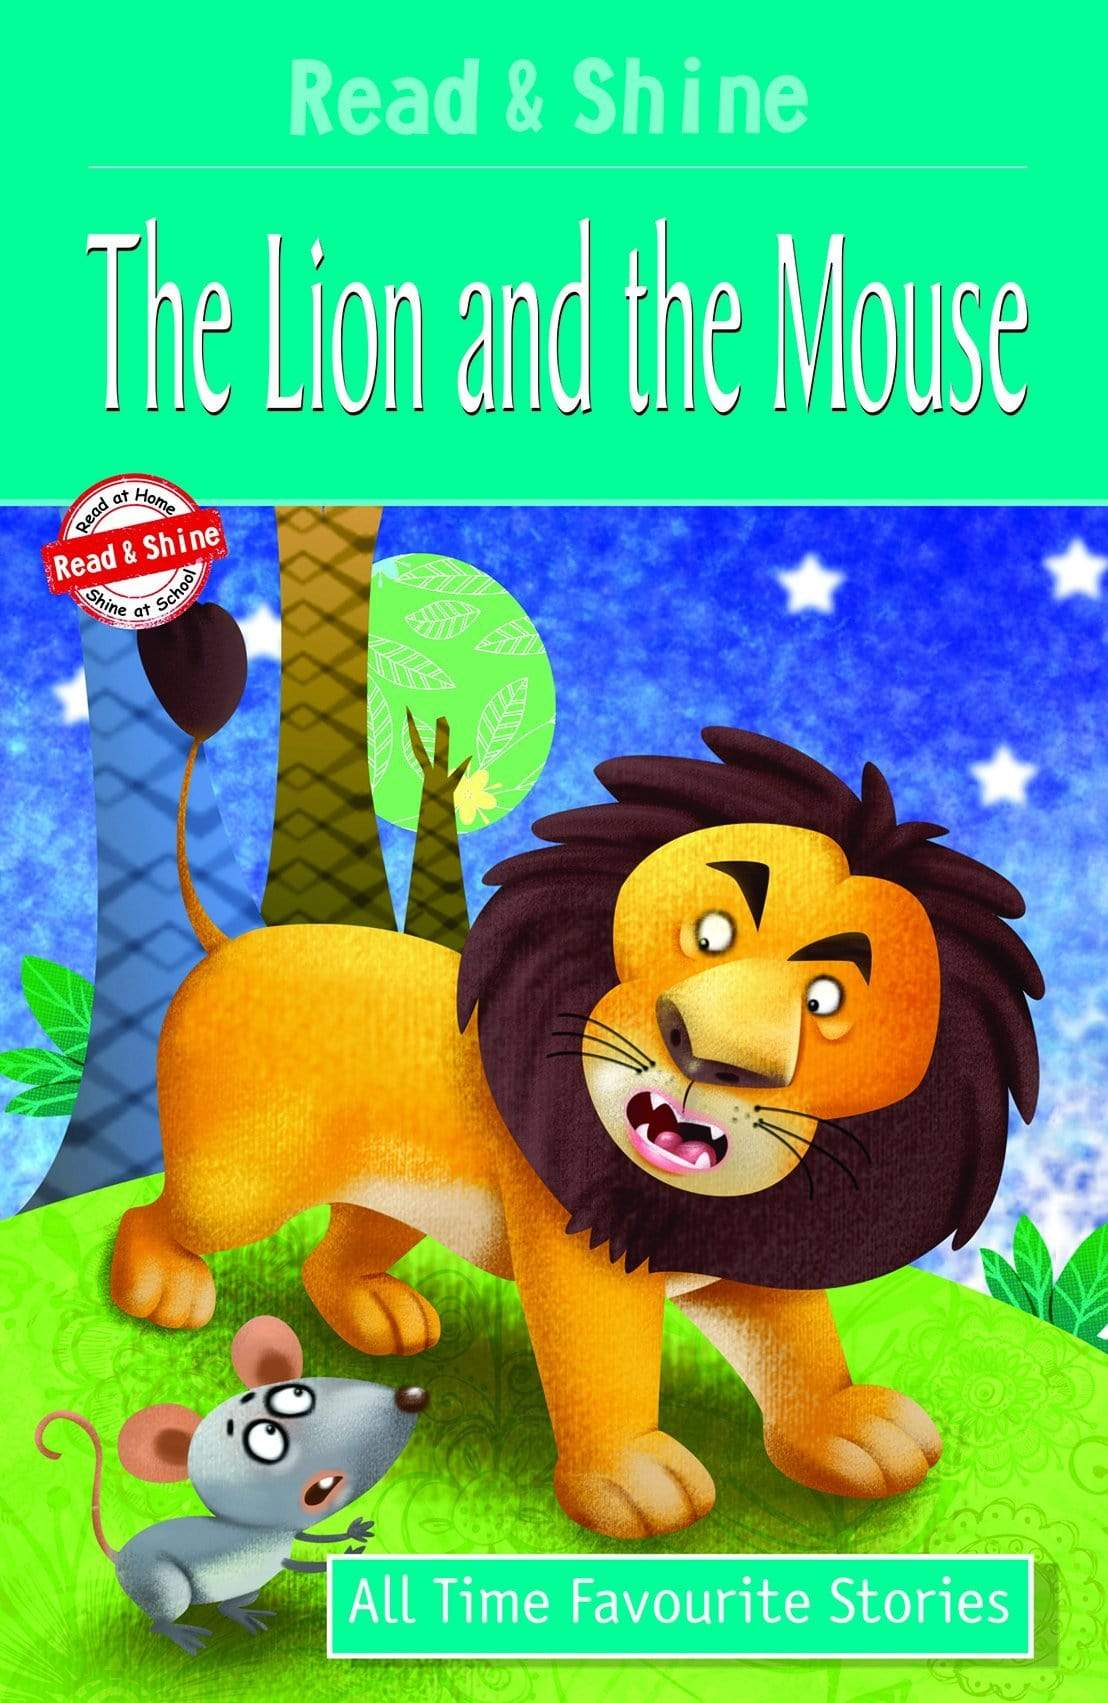 The Lion and The Mouse - All Time Favourite Stories